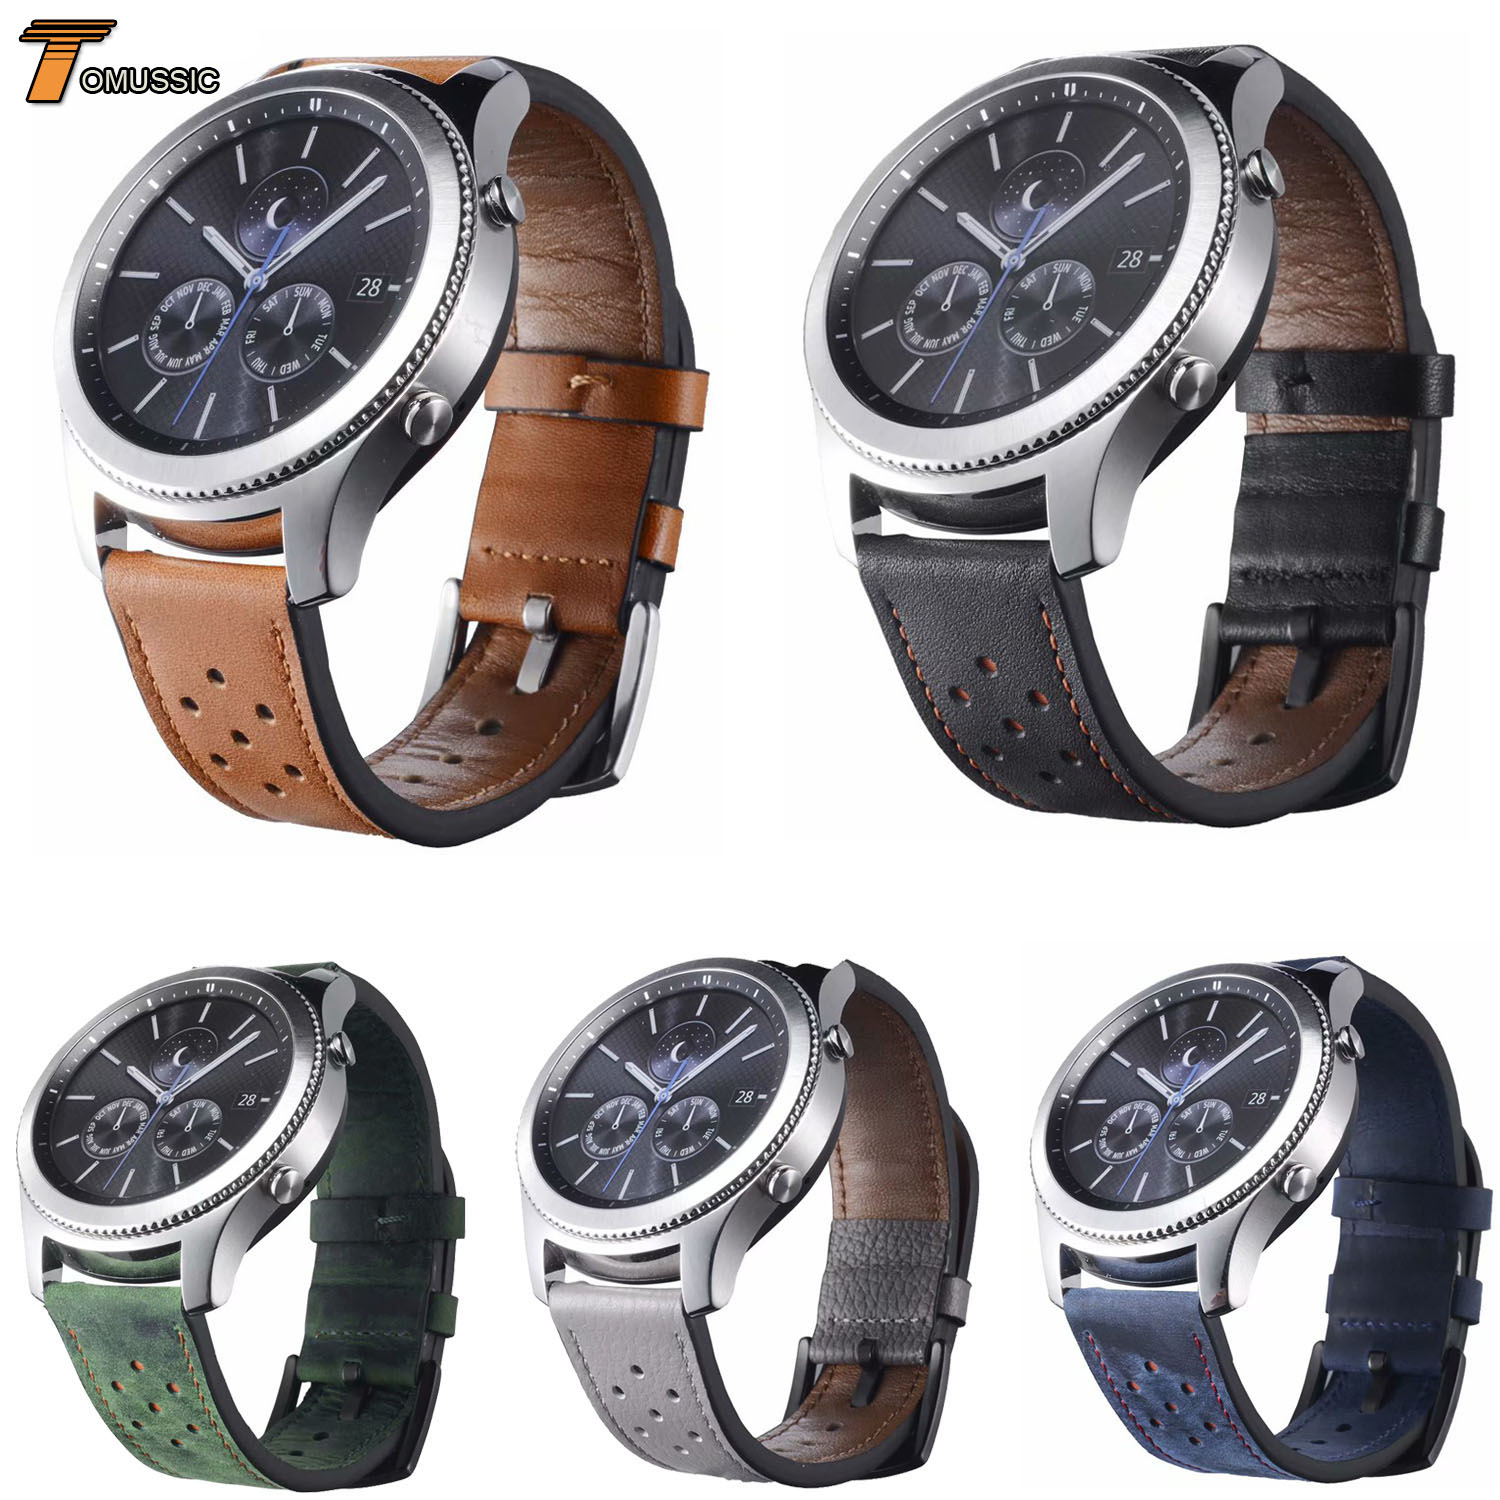 22mm Flower Hole Genuine Leather Watch Strap For Samsung Gear S3 Frontier Classic Replacement Band For Galaxy Watch 46mm Version 22mm retro matte genuine leather strap for samsung gear s3 frontier s3 classic band bracelet for samsung galaxy watch 46mm strap